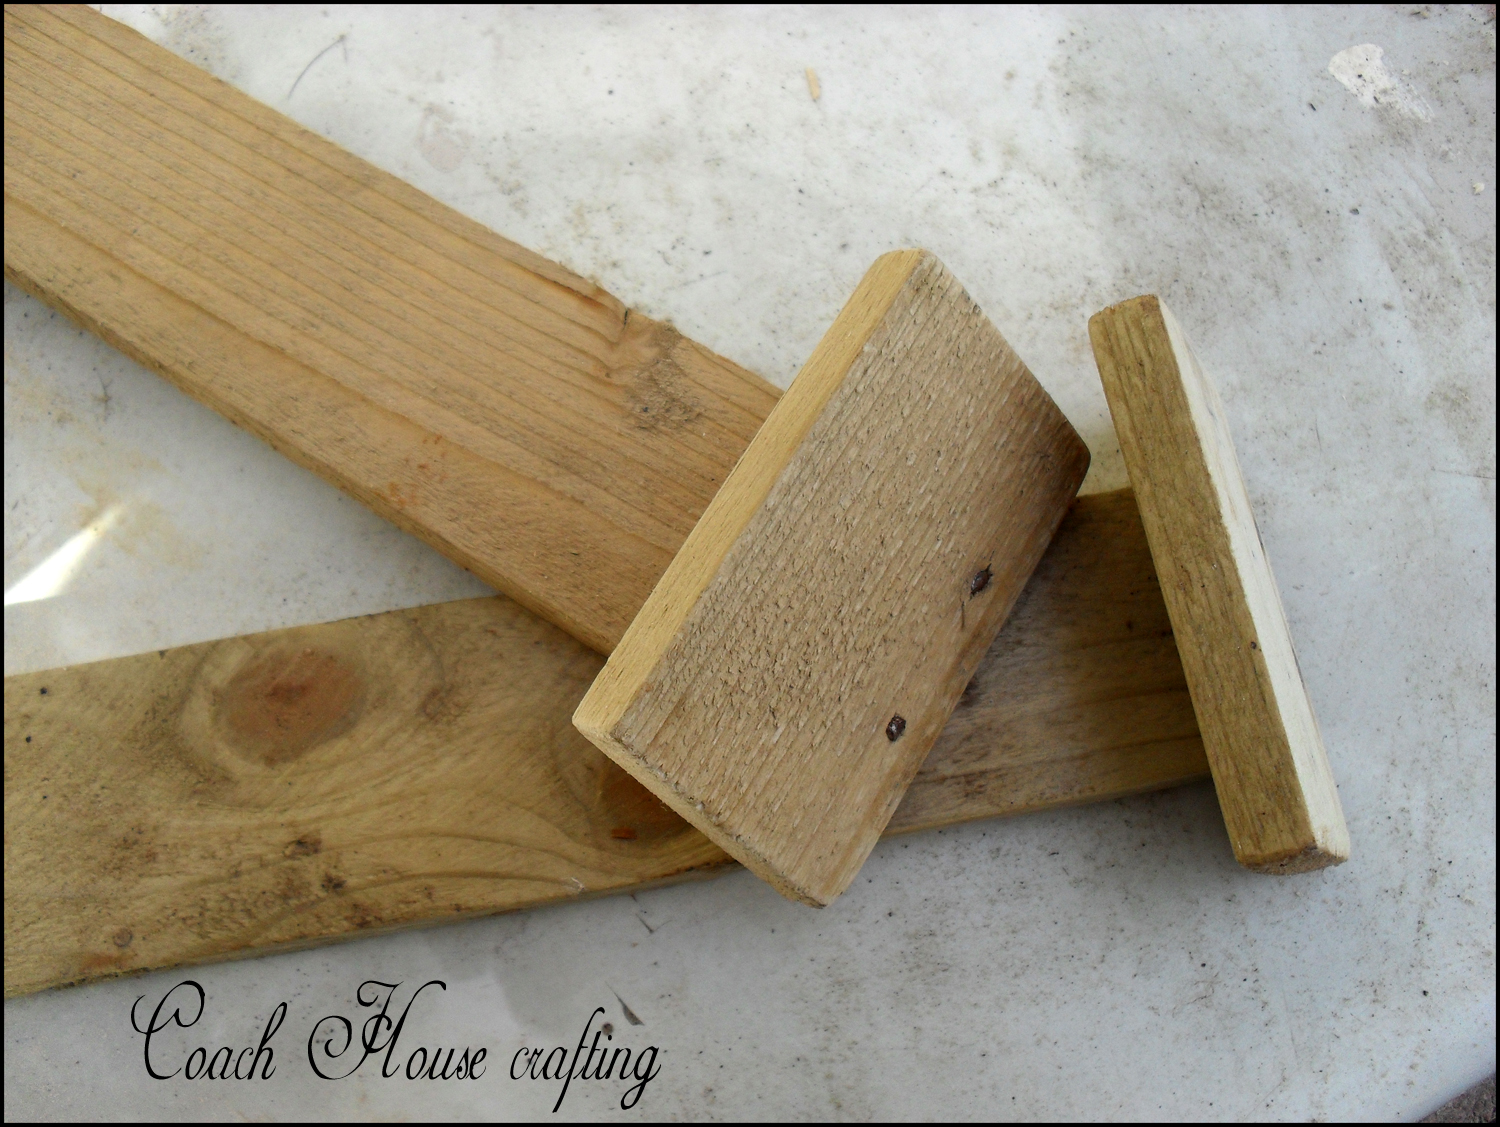 Coach House Crafting on a budget: Scrap wood plant labels